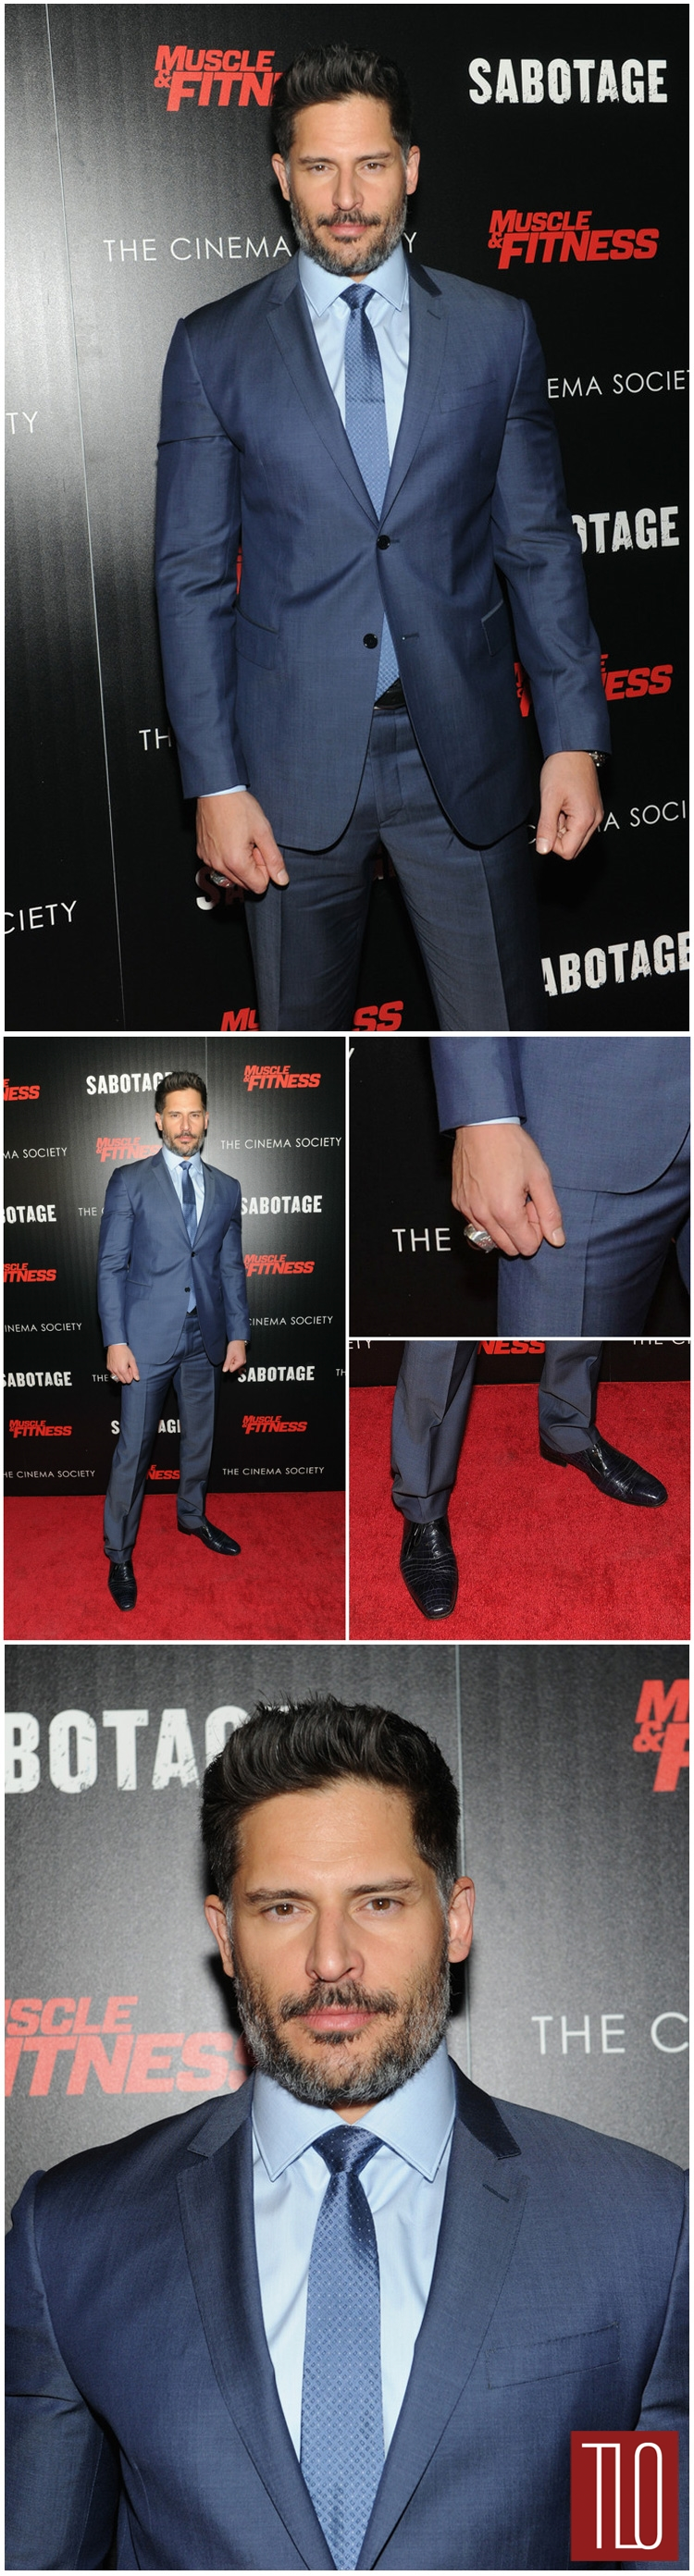 Joe-Manganiello-Sabotage-NYC-uscle-Fitsness-Screening-TLO